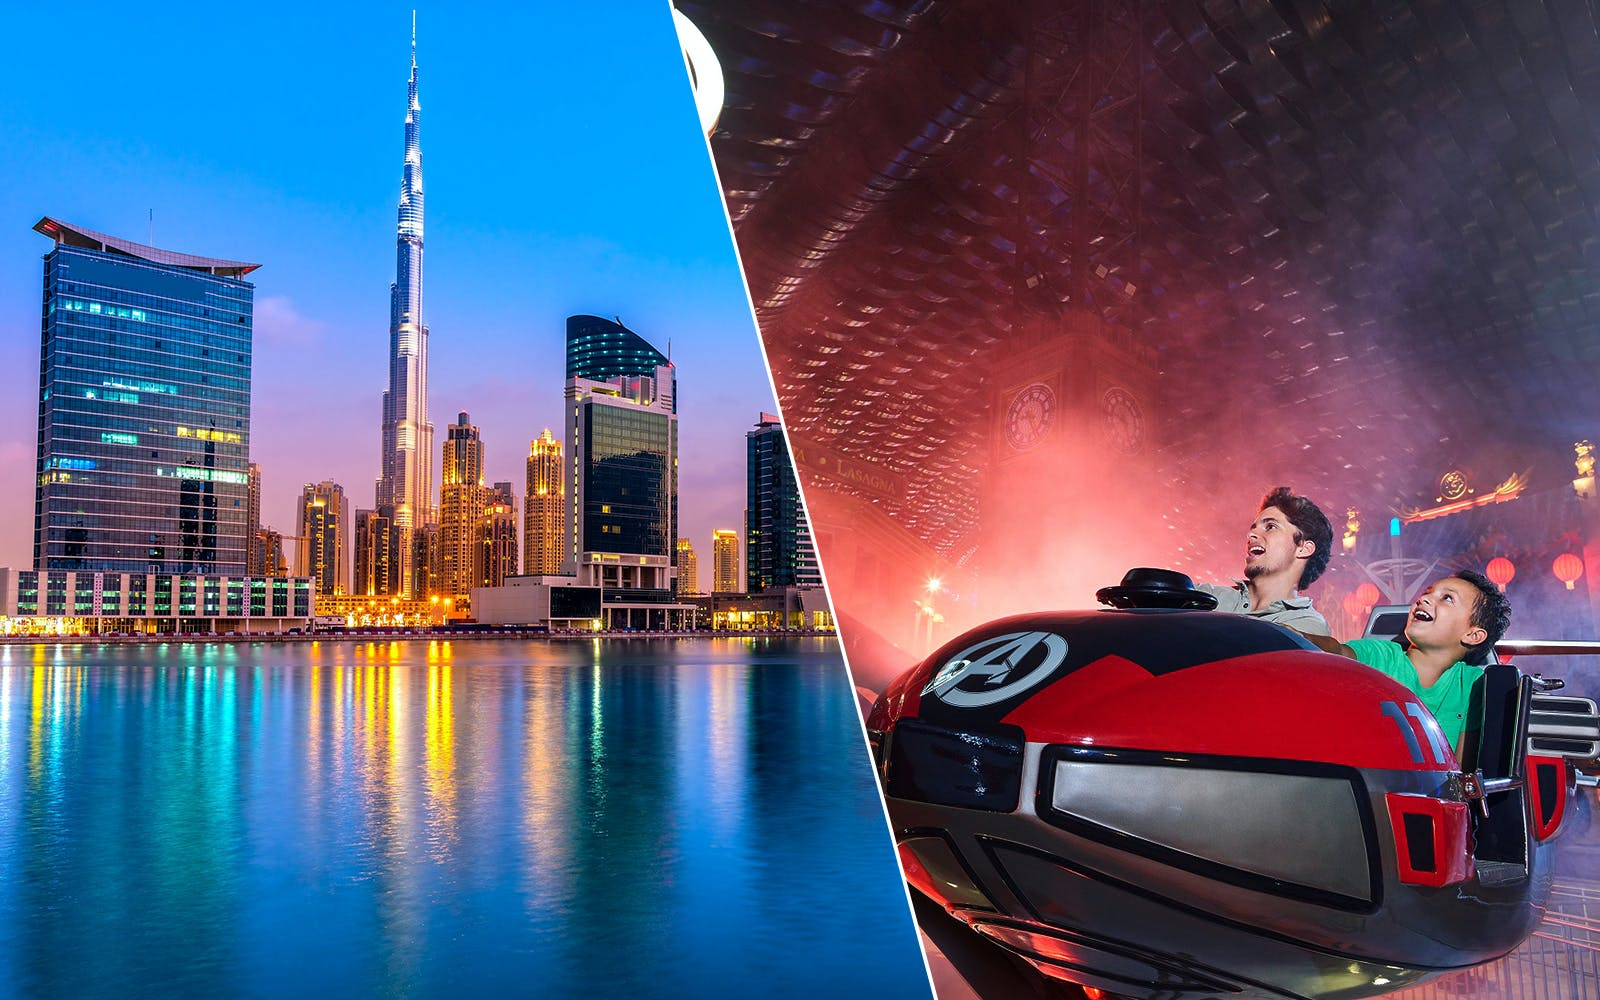 IMG Worlds of Adventure with Dubai City Tour